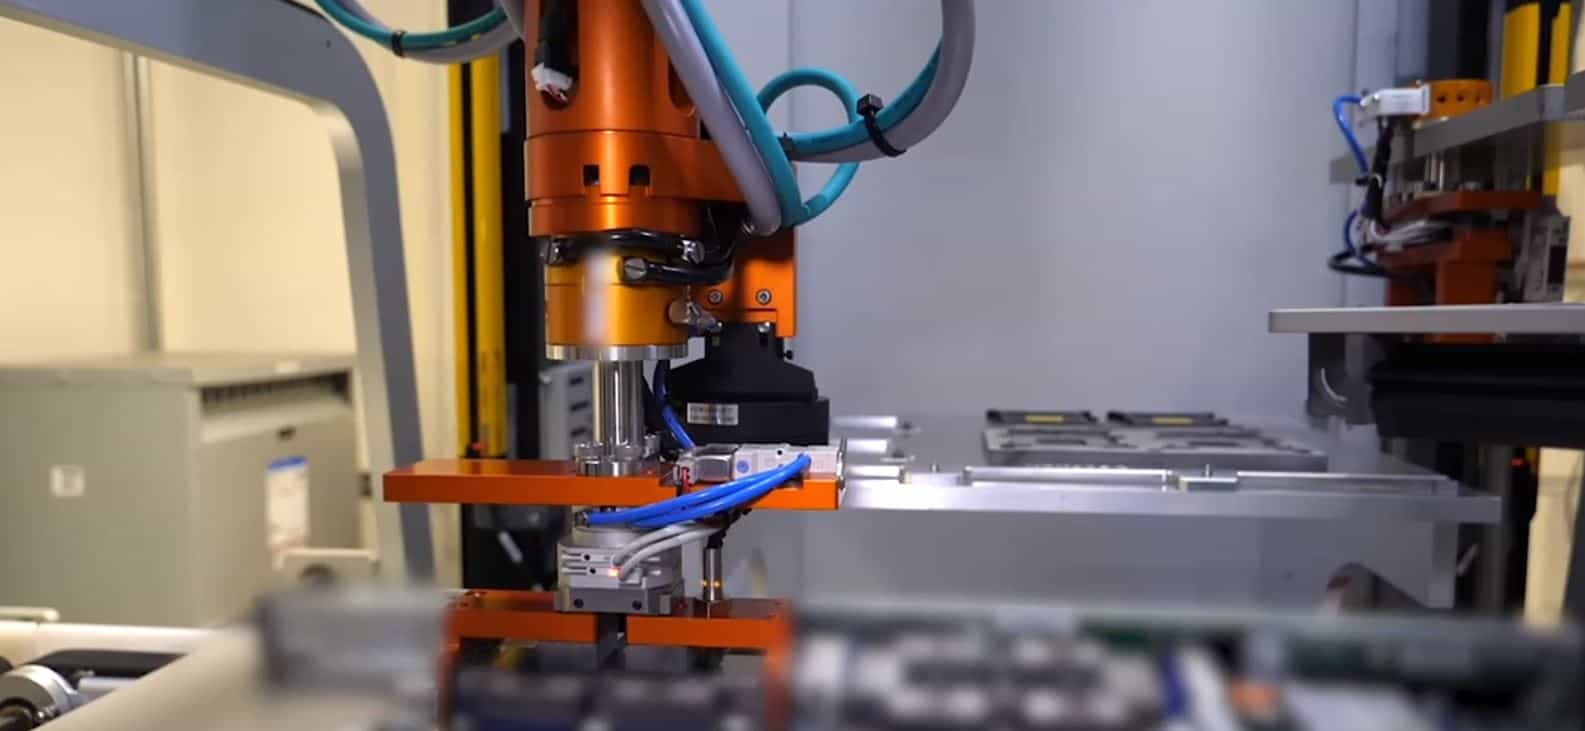 Manufacturing Innovation: Automating the Installation of Heat Sinks onto Circuit Boards Image